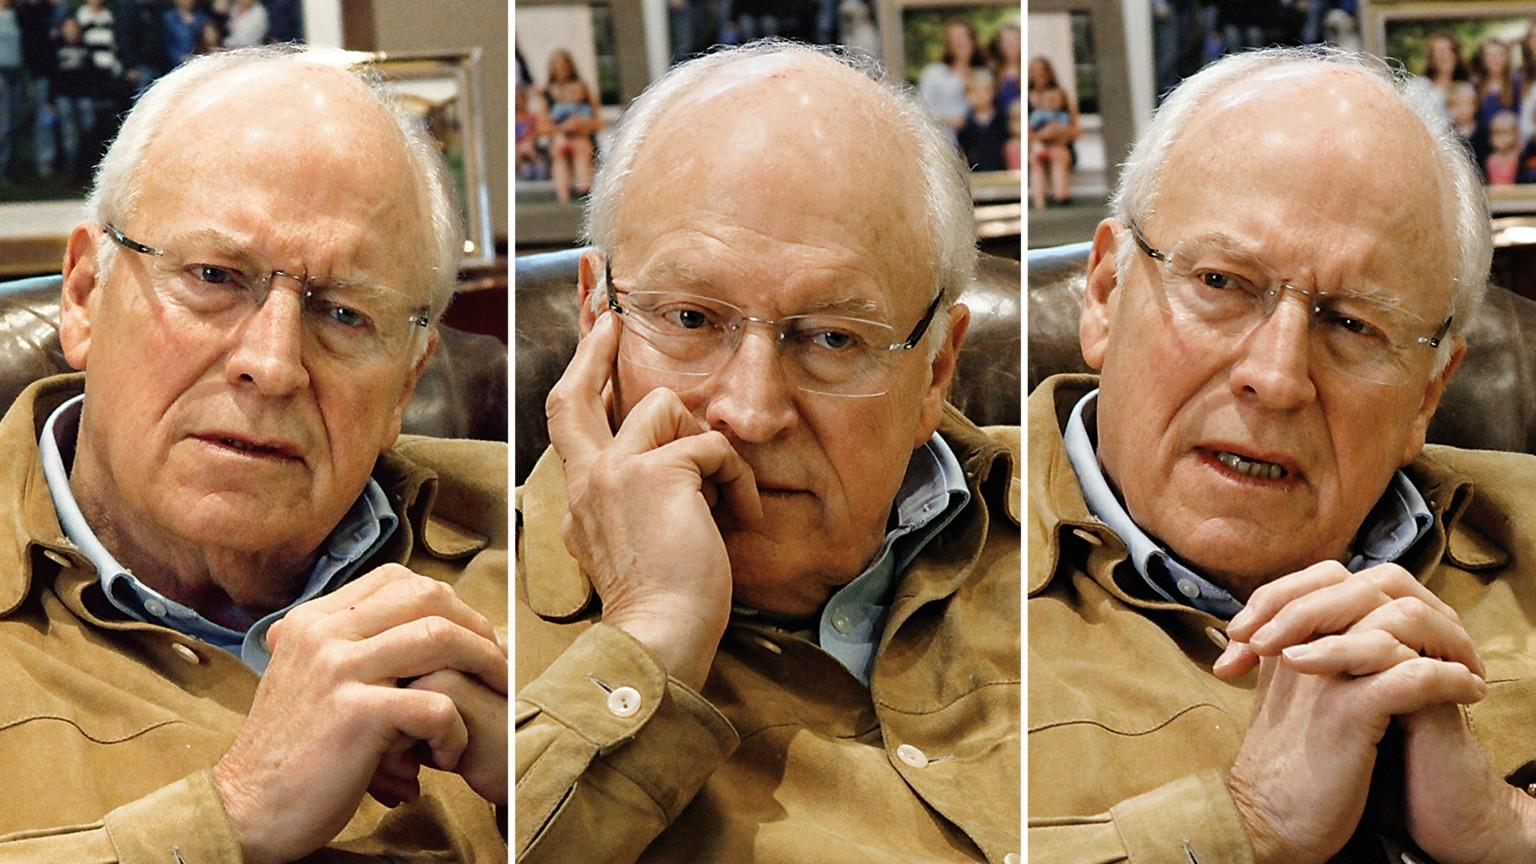 The April 2015 Playboy Interview With Dick Cheney